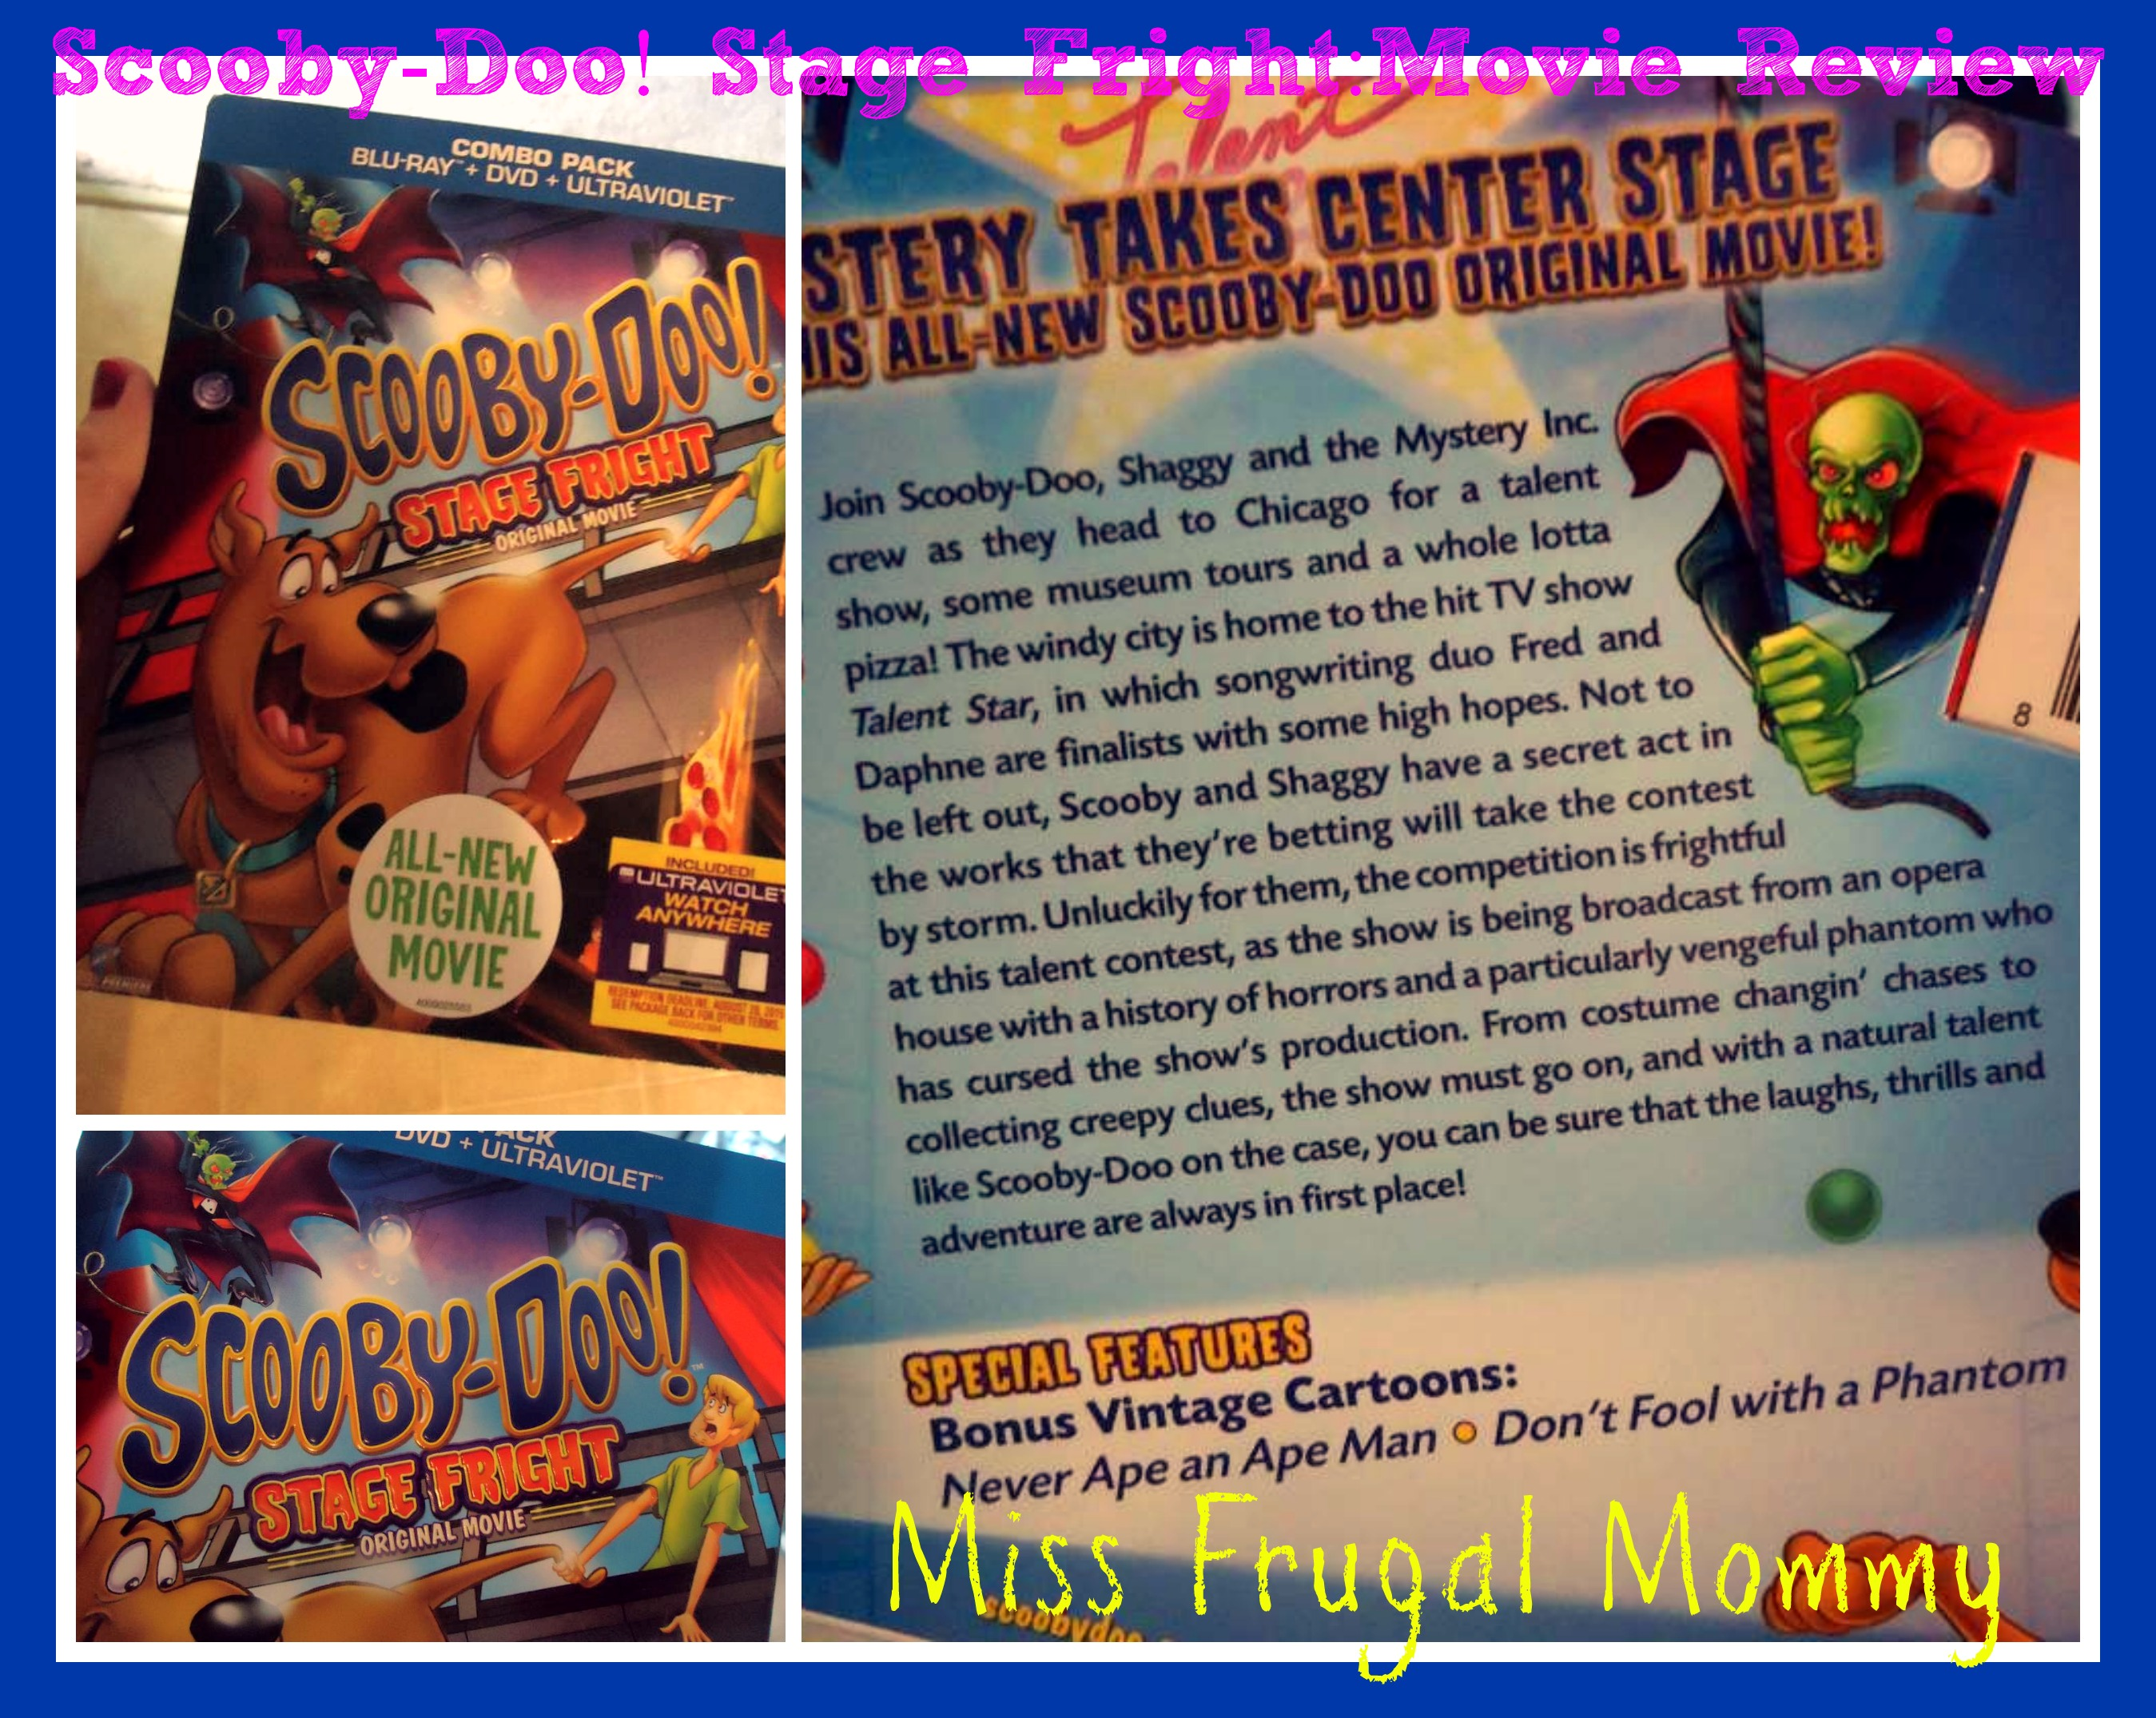 Scooby-Doo! Stage Fright: Movie Review